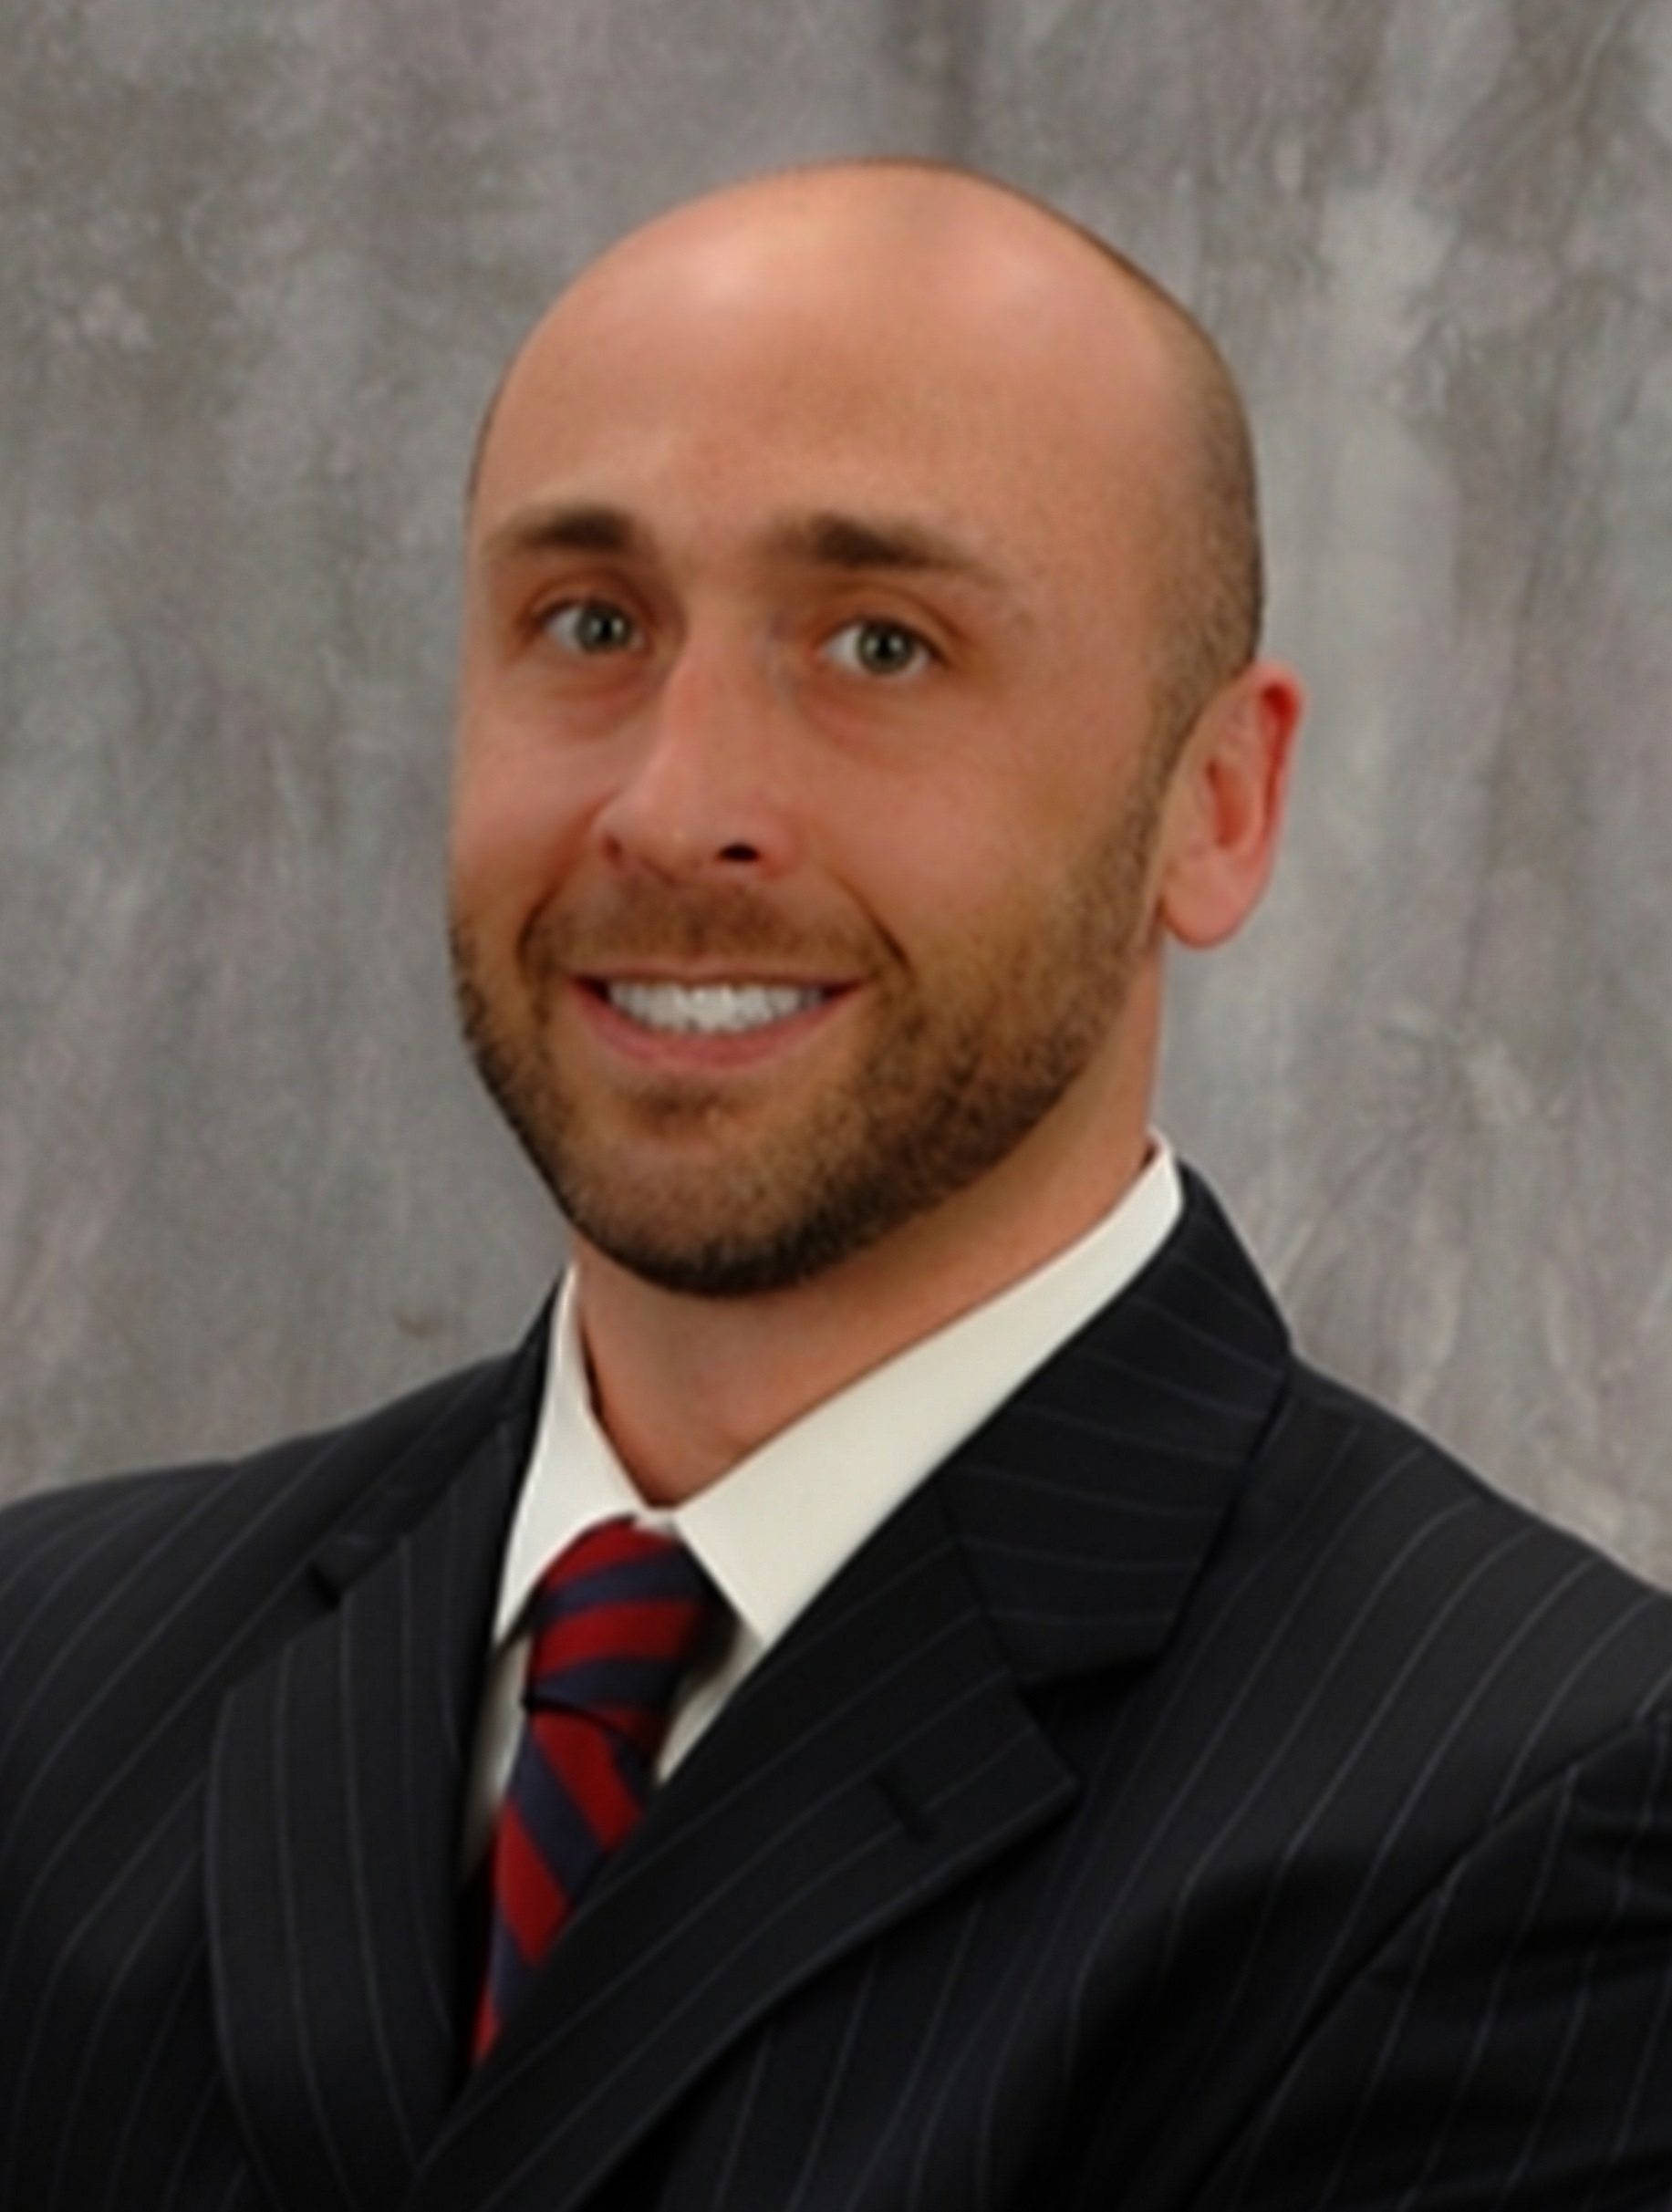 Shawn Budney, ACENTRIA INSURANCE